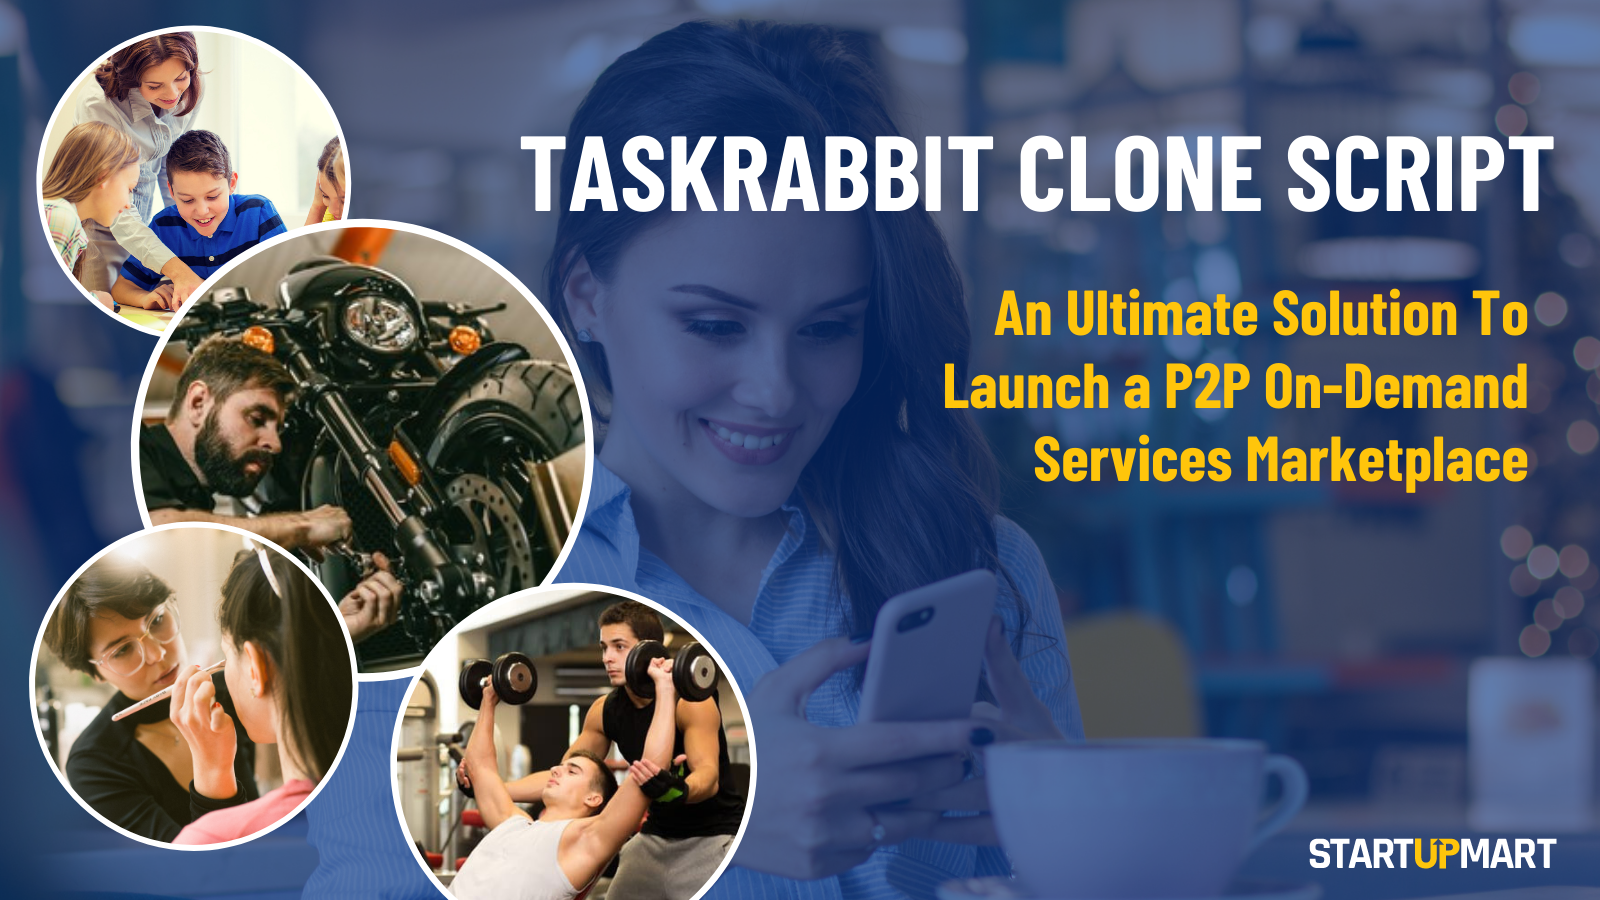 TaskRabbit Clone Script - An Ultimate Solution To Launch a P2P On-Demand Services Marketplace